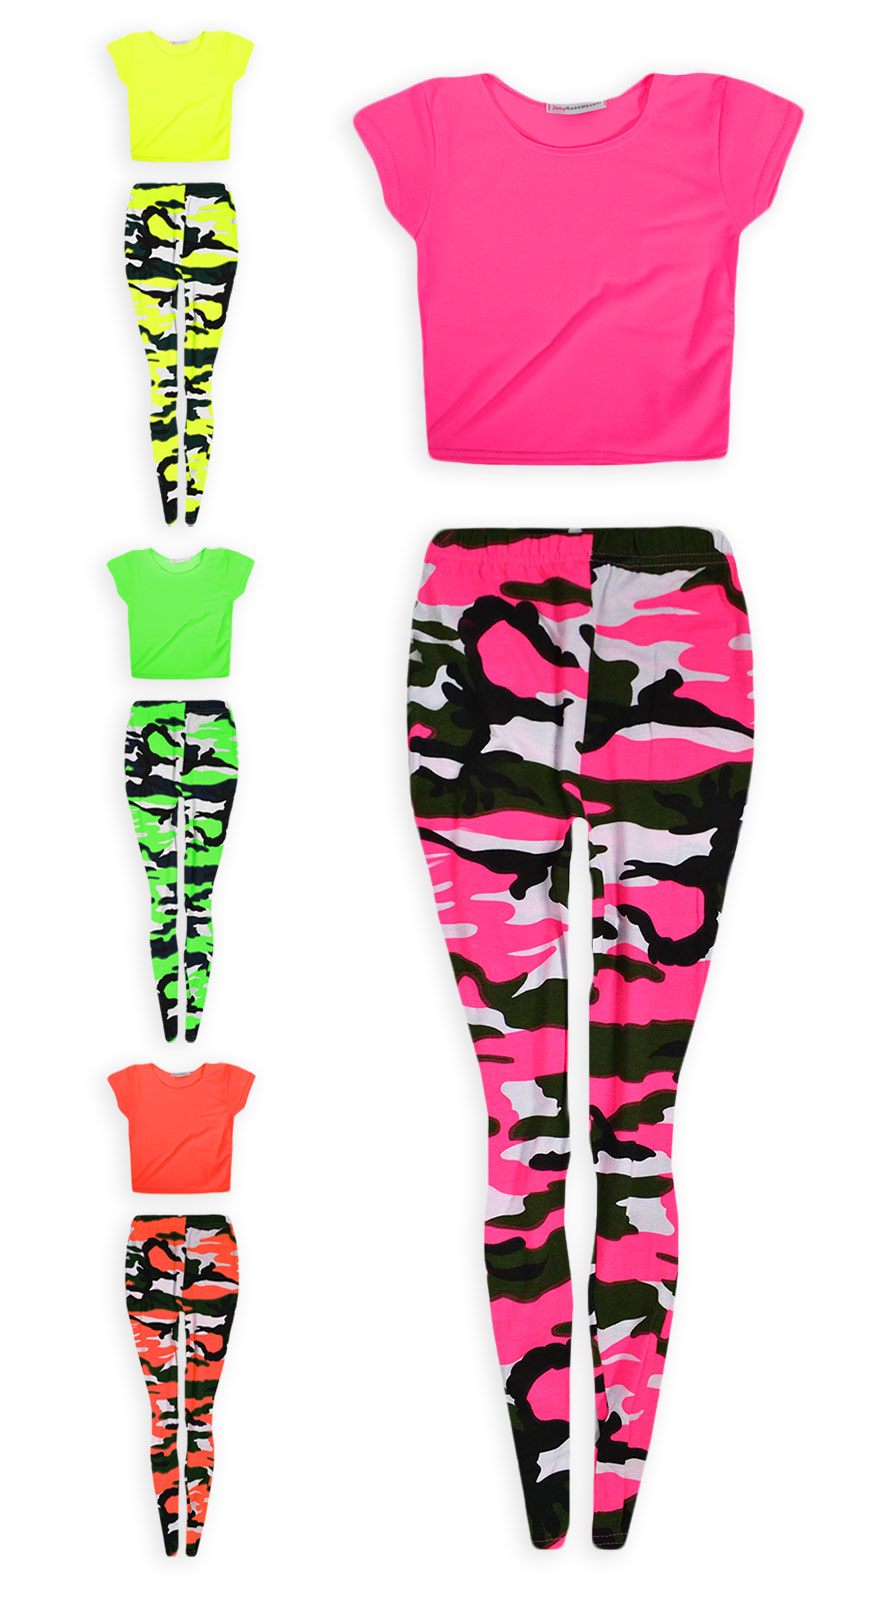 9625462948fe37 Details about Girls Dance Set Neon Crop Top And Camo Legging 2 Piece Set  New Kids Age 7-13 Yrs